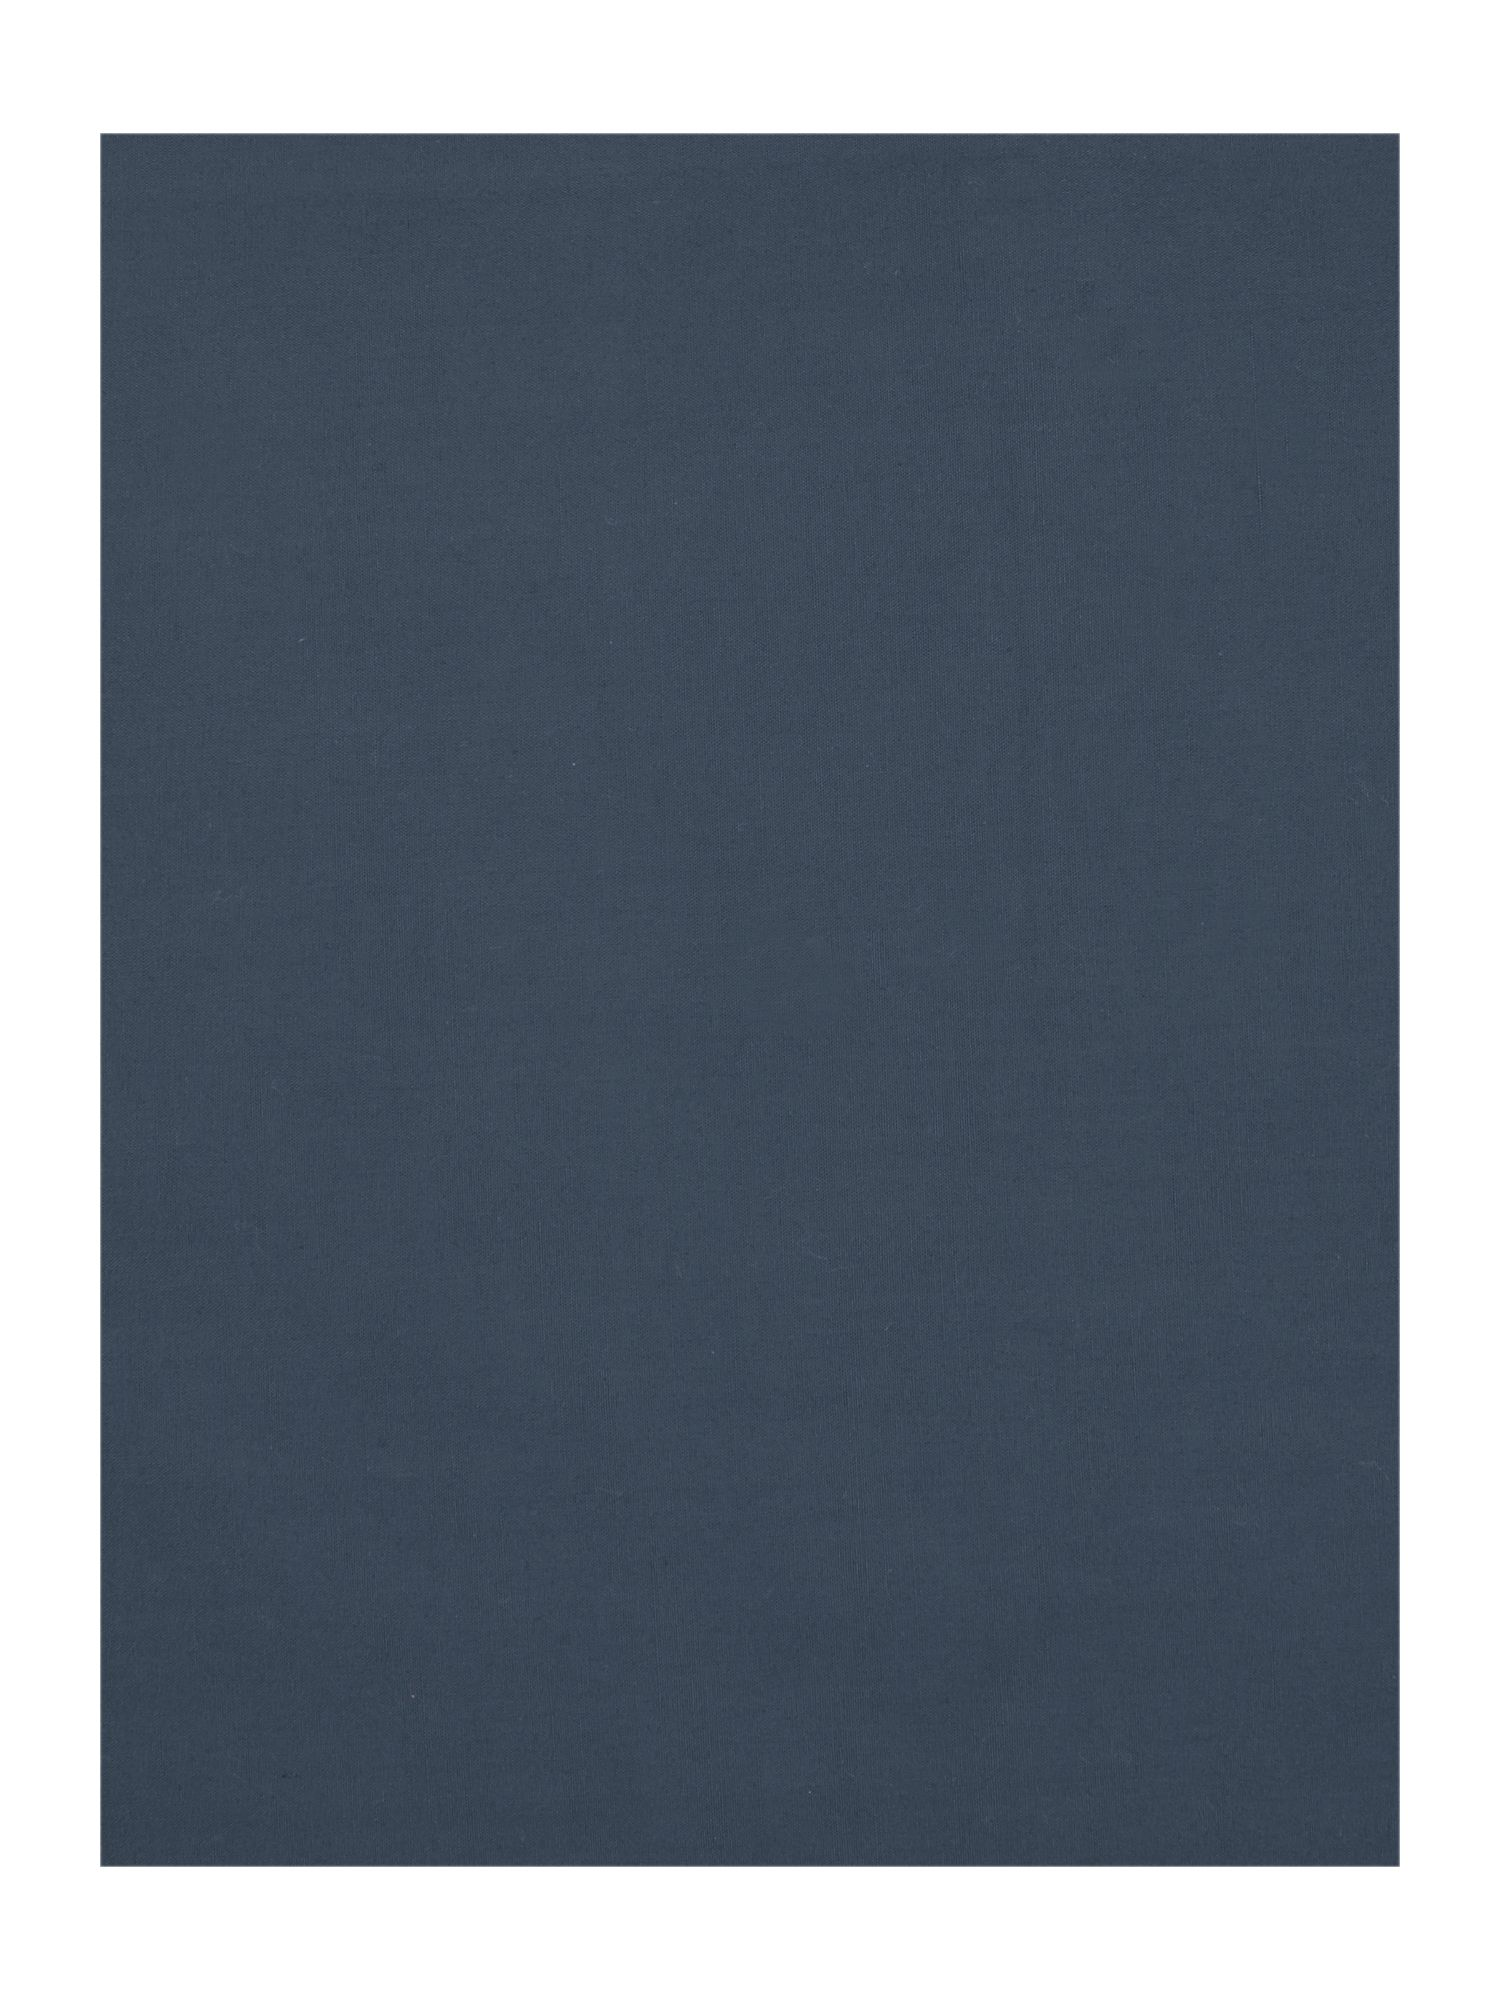 Egyptian cotton bedding range in indigo